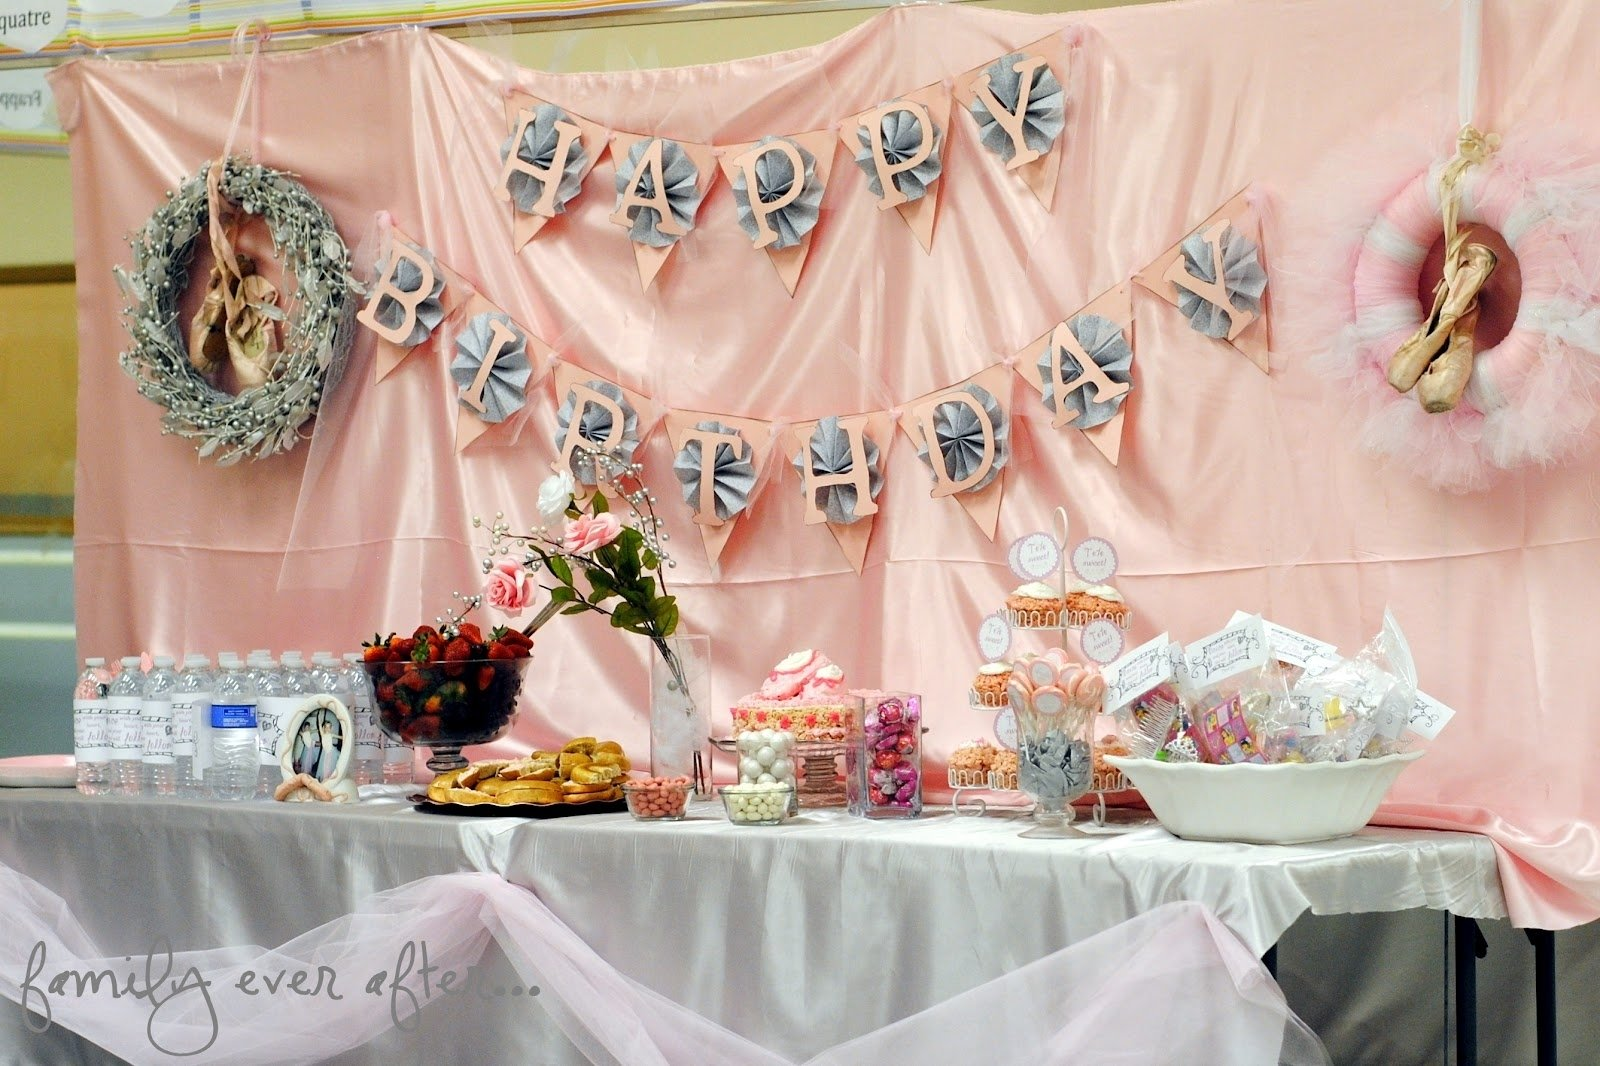 10 Stunning Birthday Ideas For Little Girls 50 birthday party themes for girls i heart nap time 60 2021